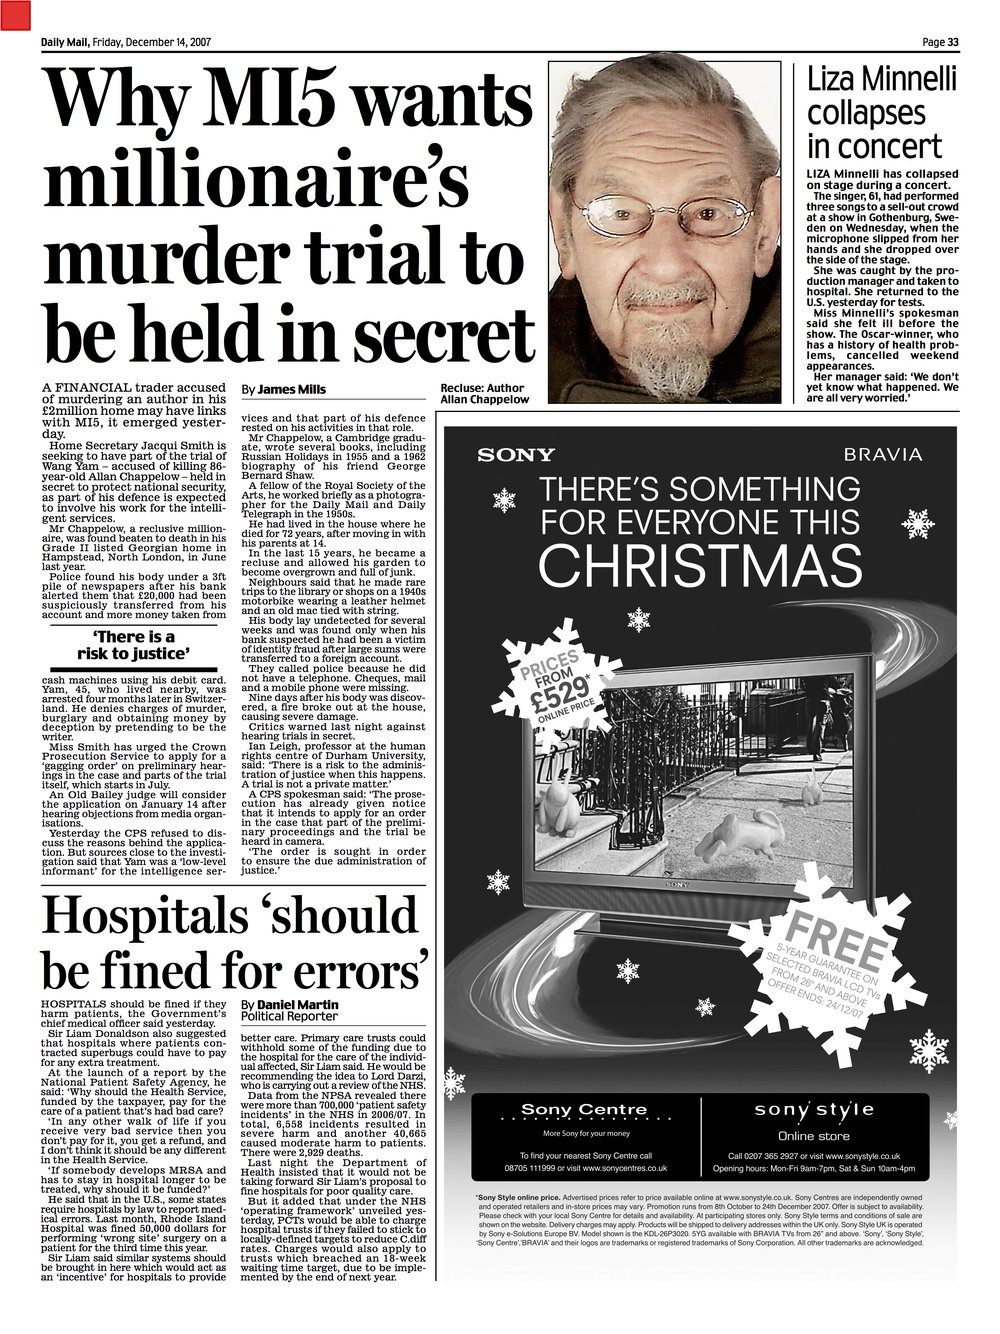 Daily Mail 14 December 2007